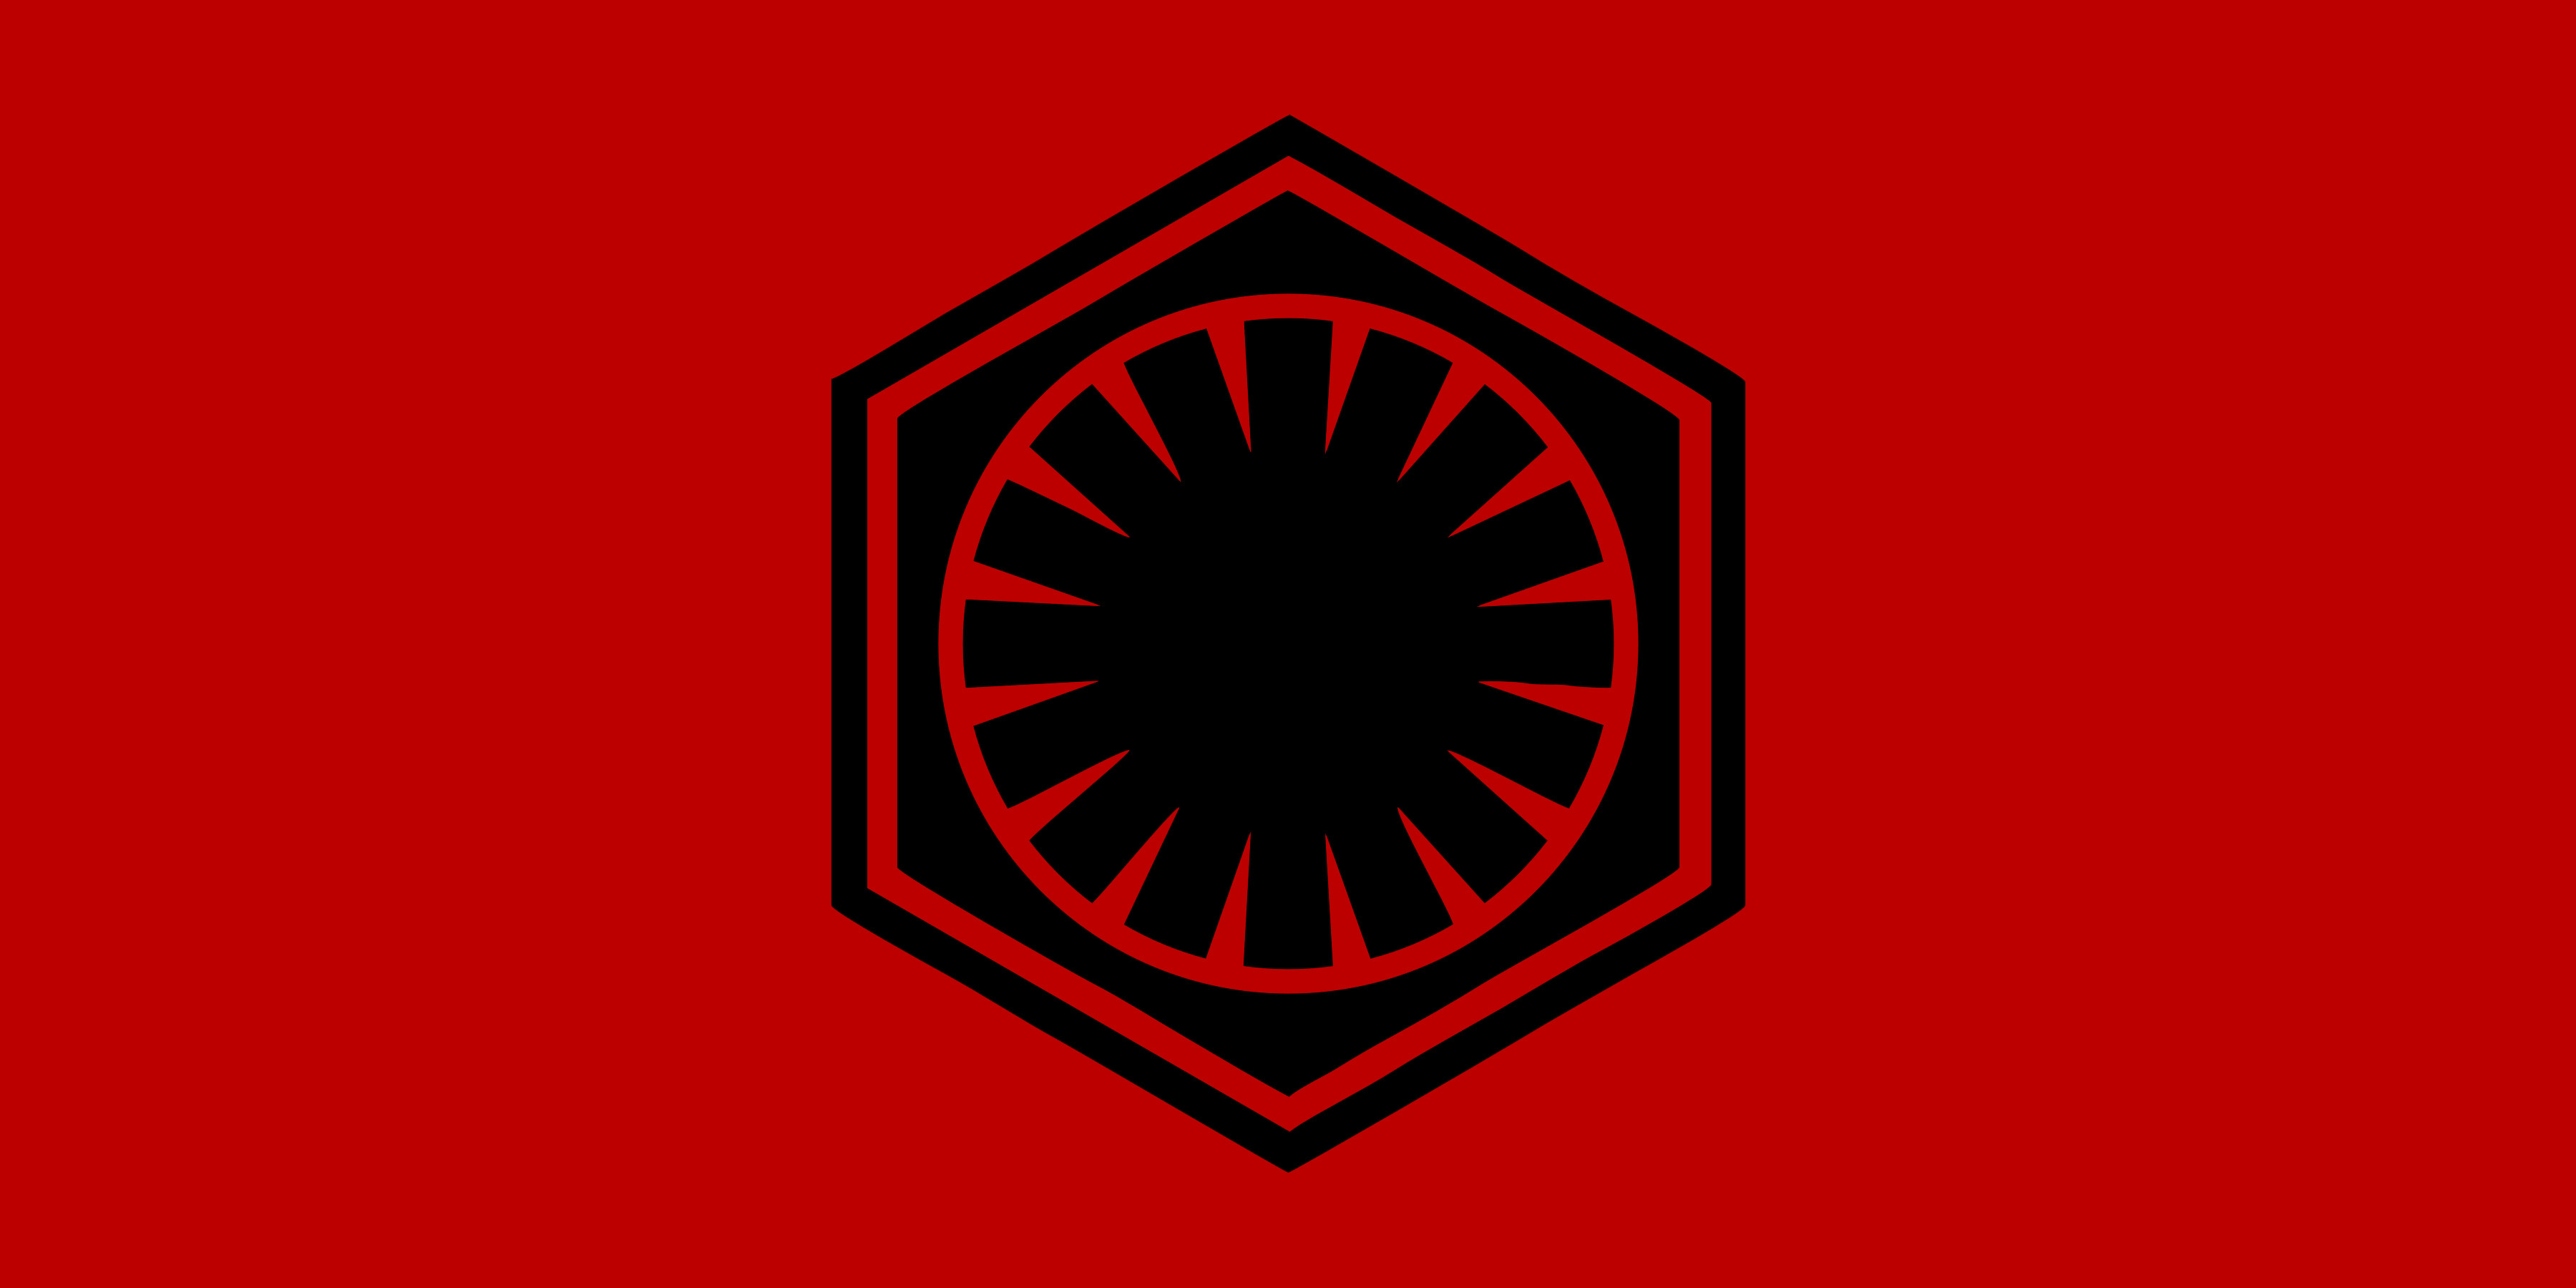 Flag of the First Order (Alternate) by RedRich1917 on .